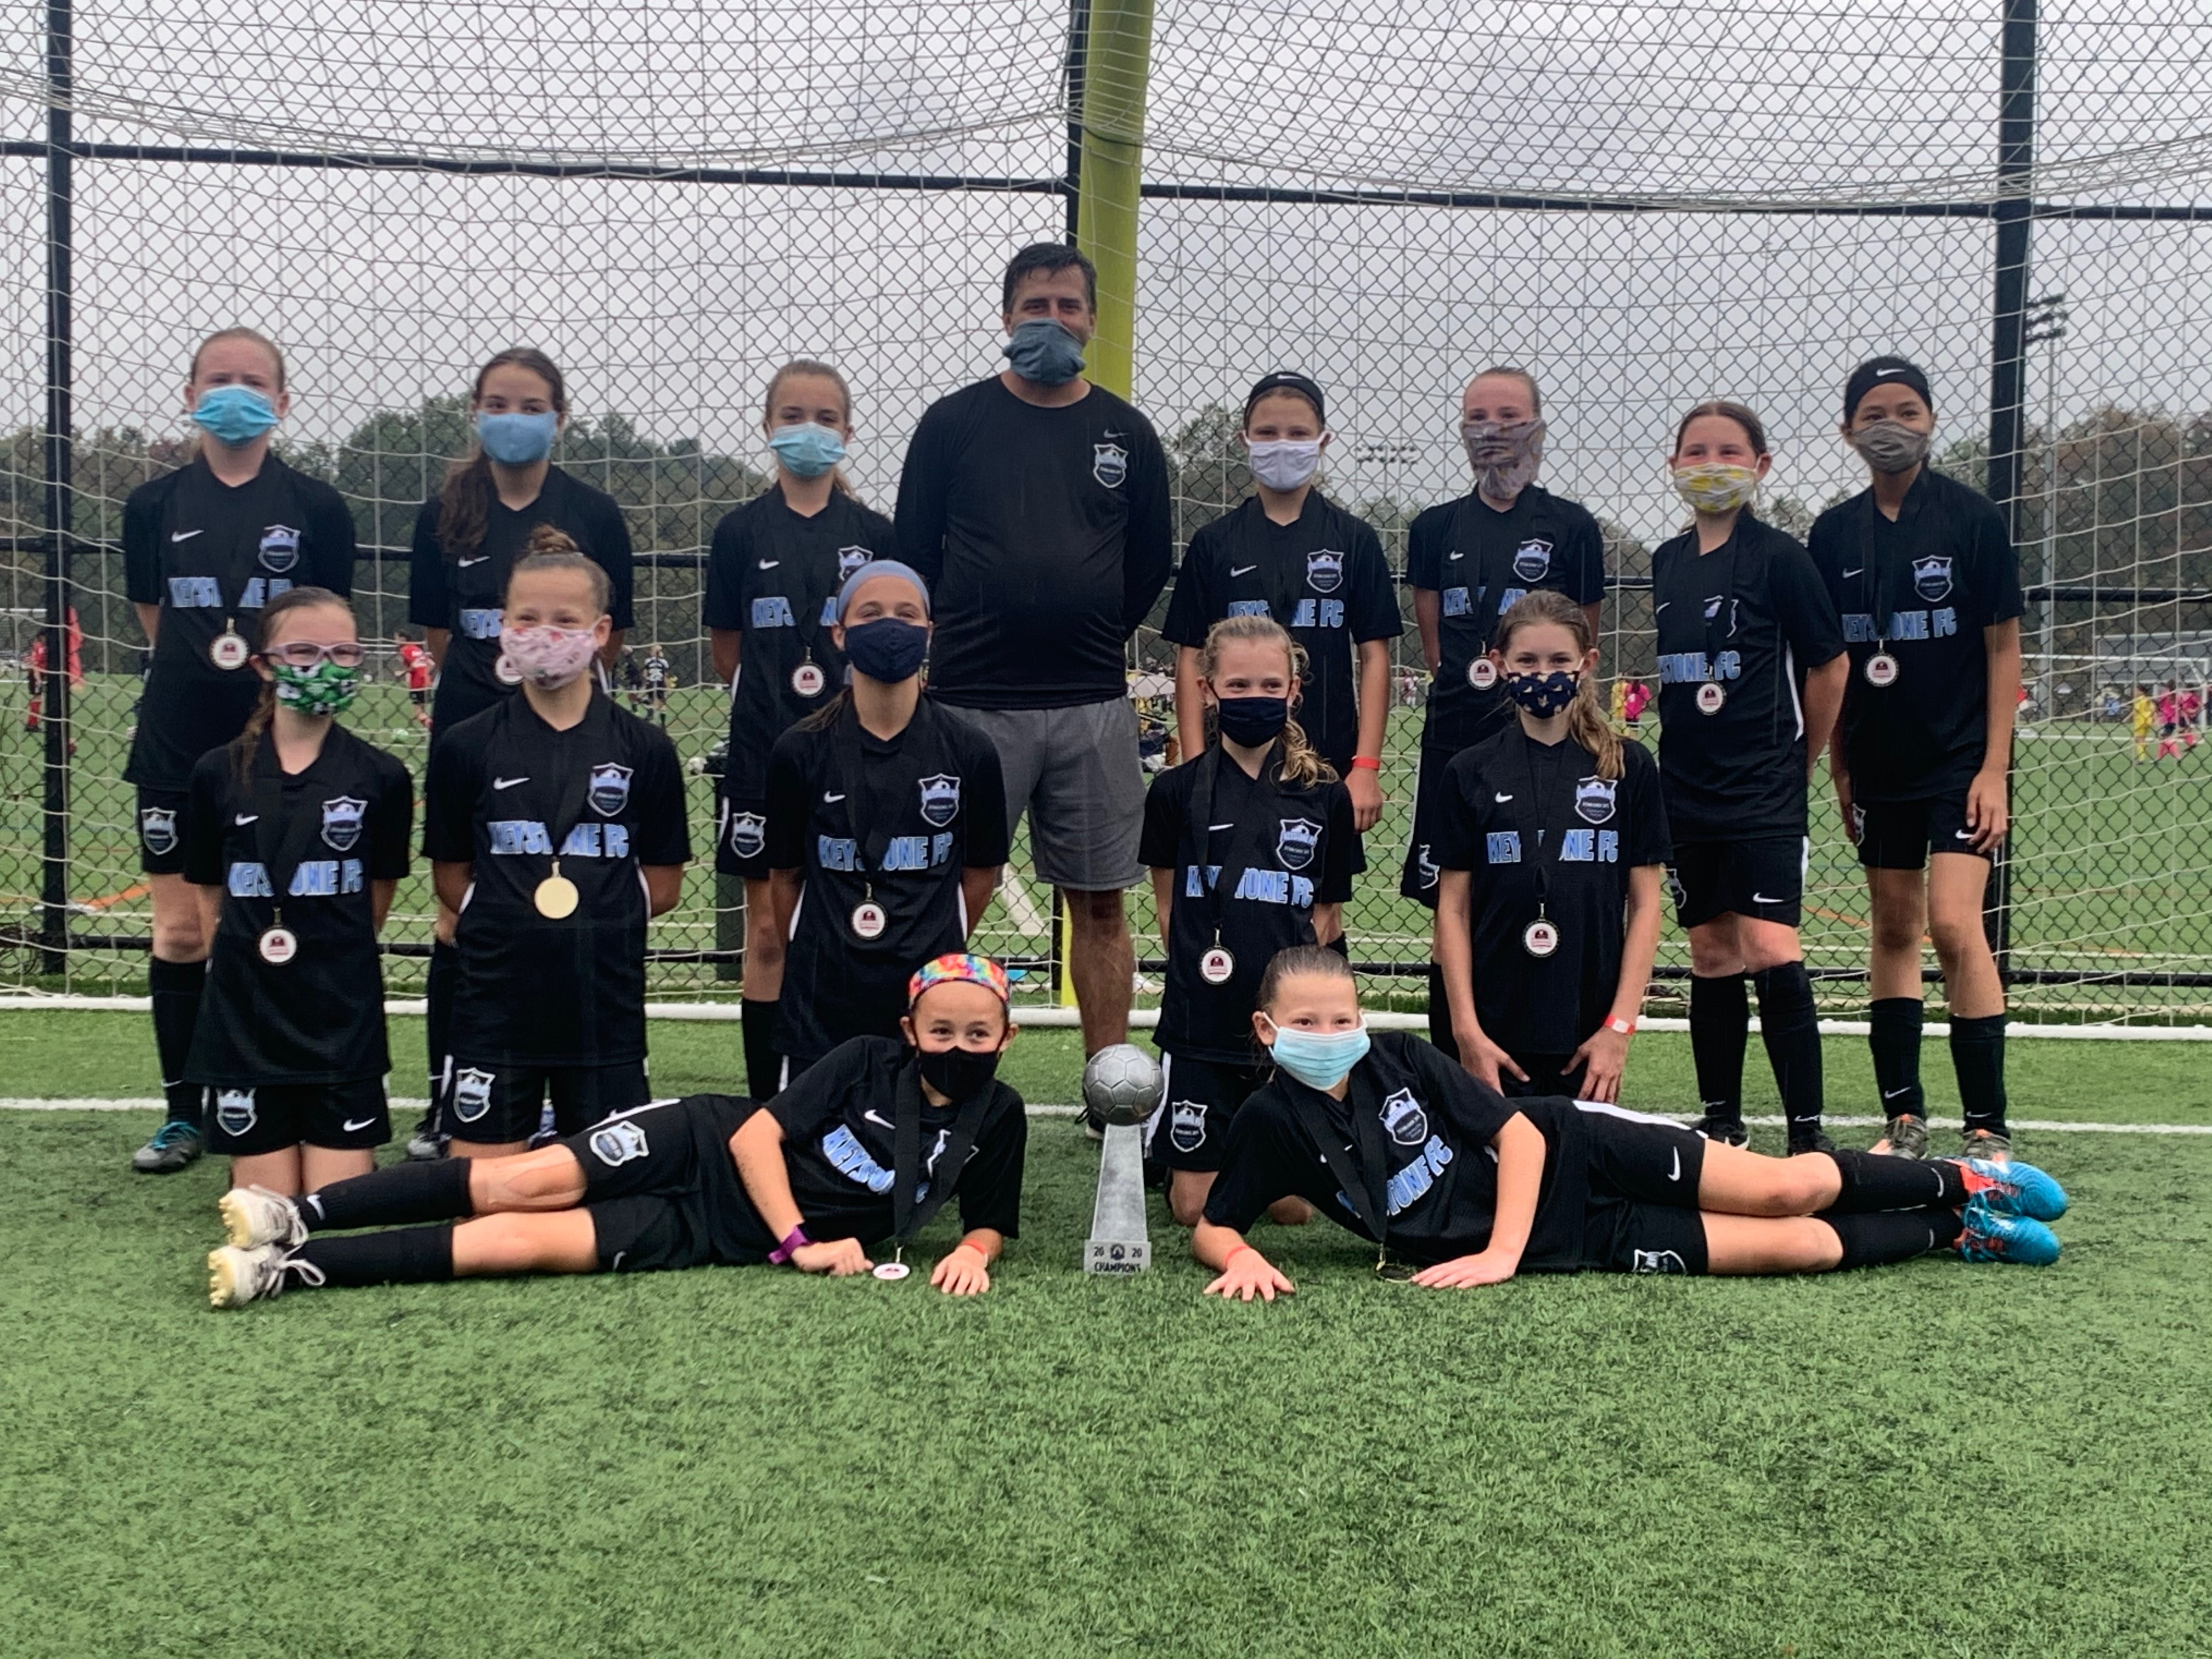 Elite 09G Win WAGS